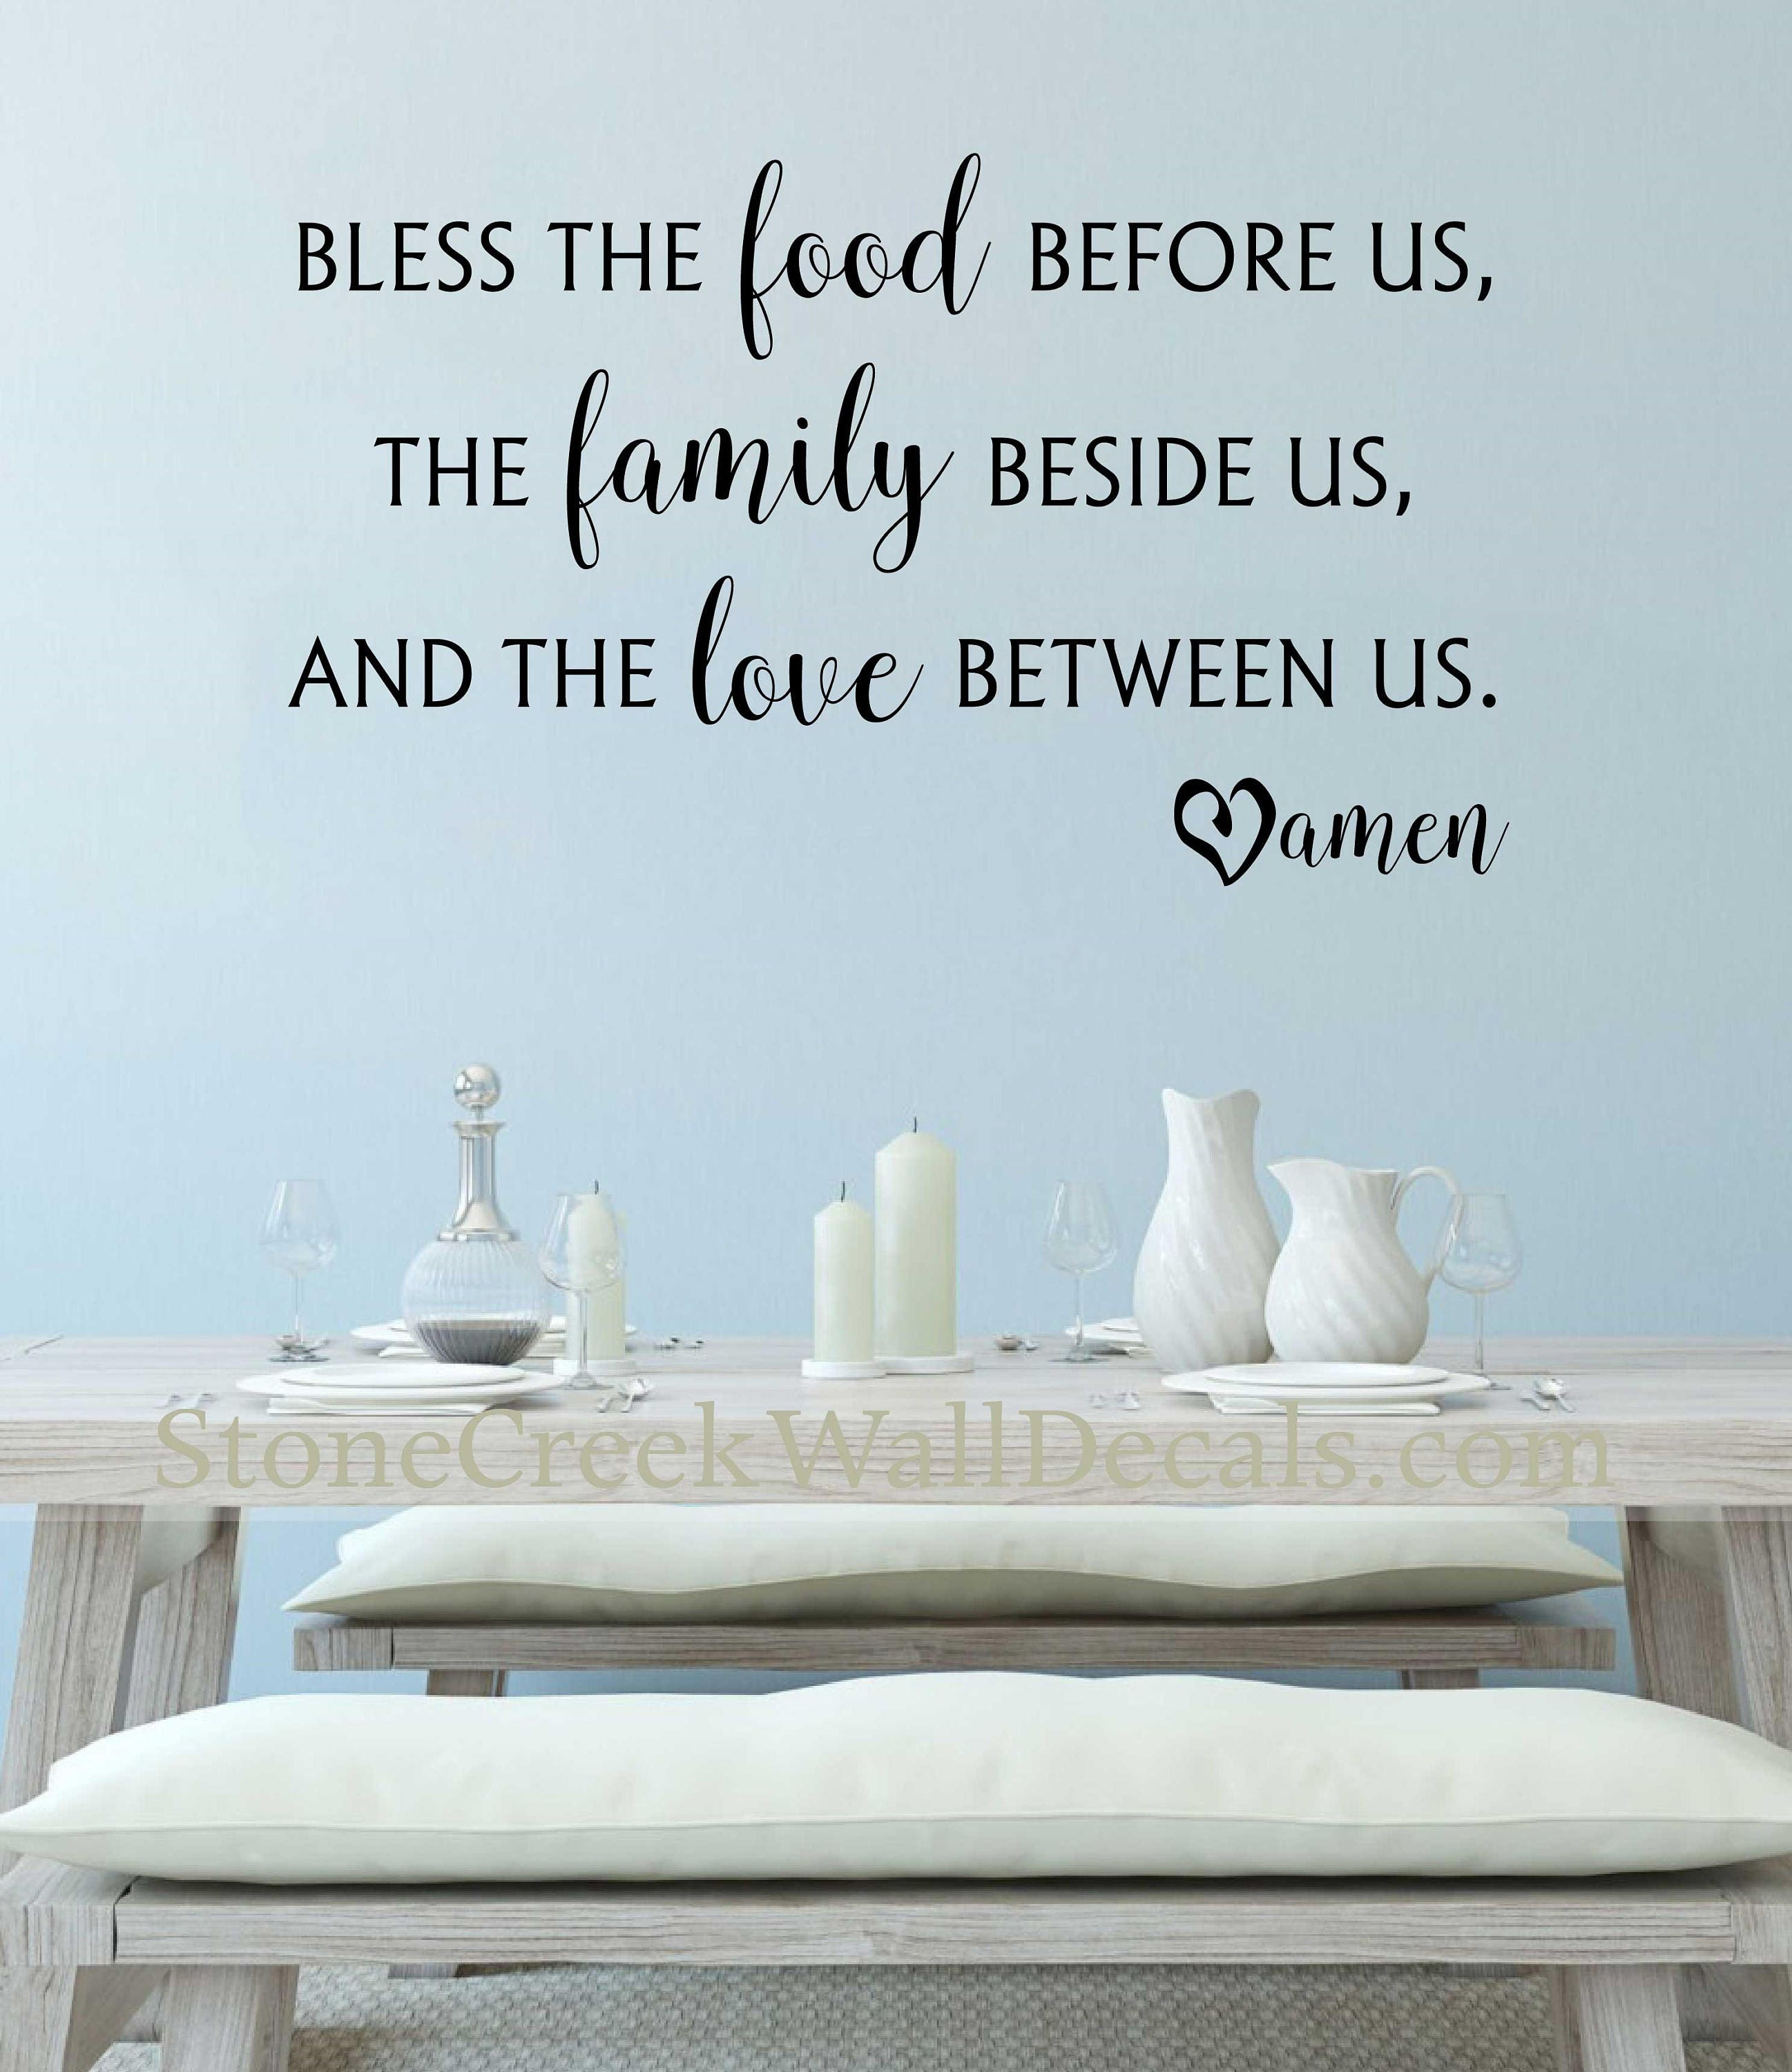 Bless the Food Before Us Wall Decal Kitchen Wall Decal Dining Room ...